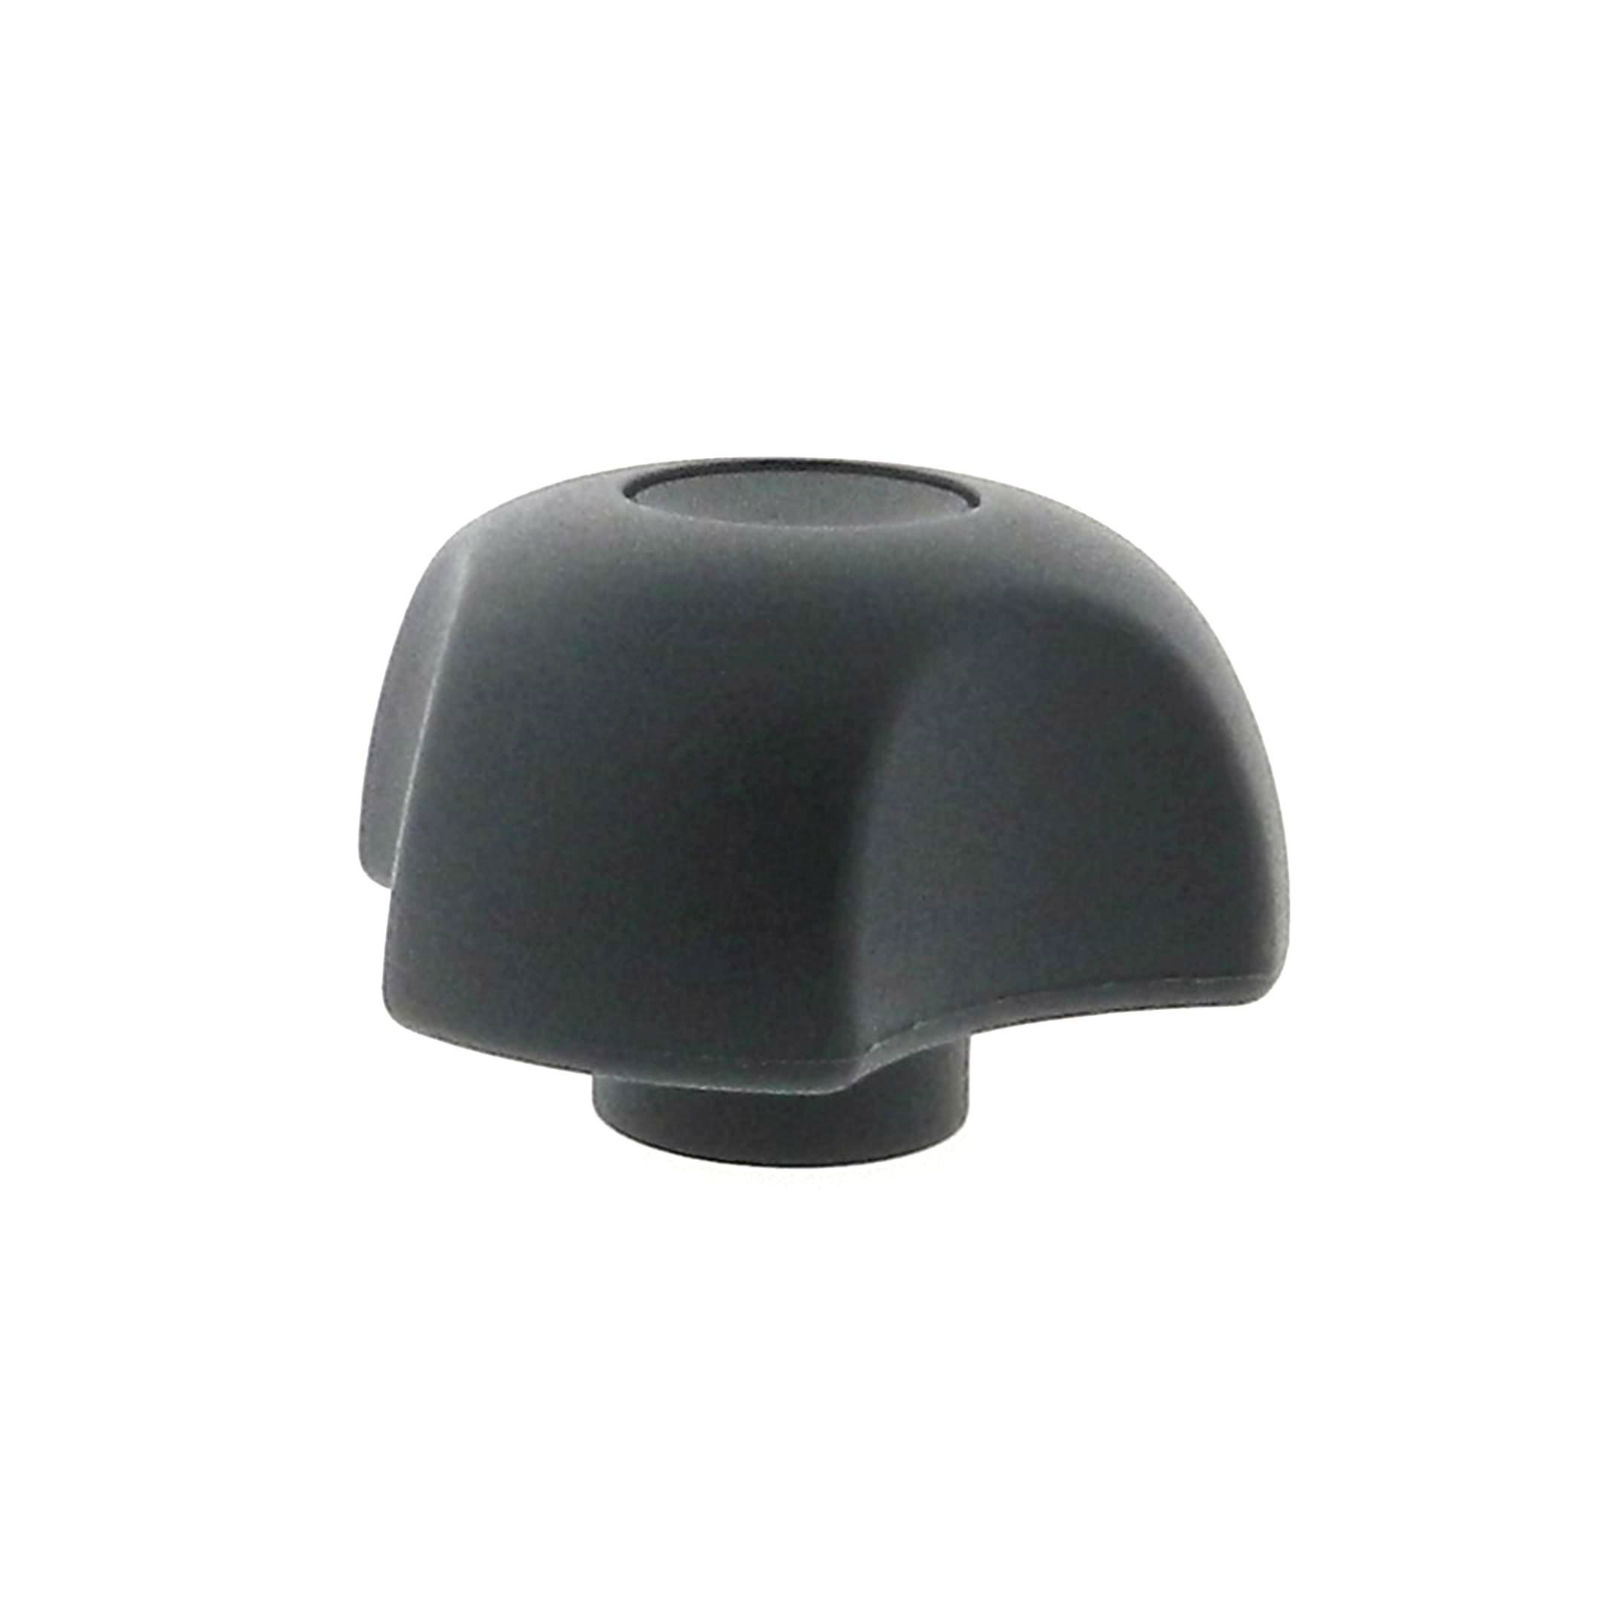 A thermoplastic 3-lobe knob with a stainless steel tapped hole